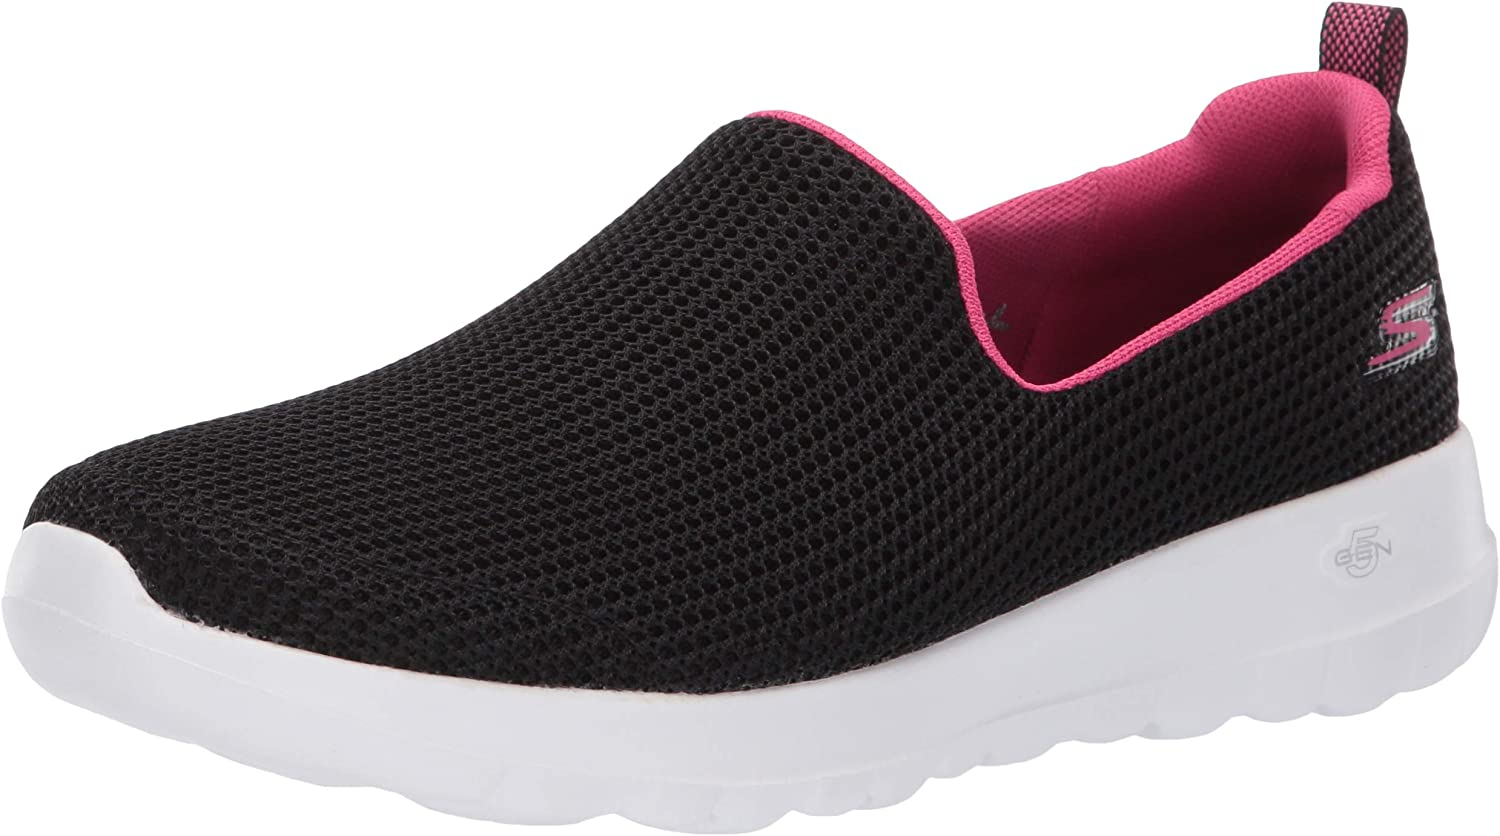 Skechers Women's Go Walk Joy-15637 Sneaker